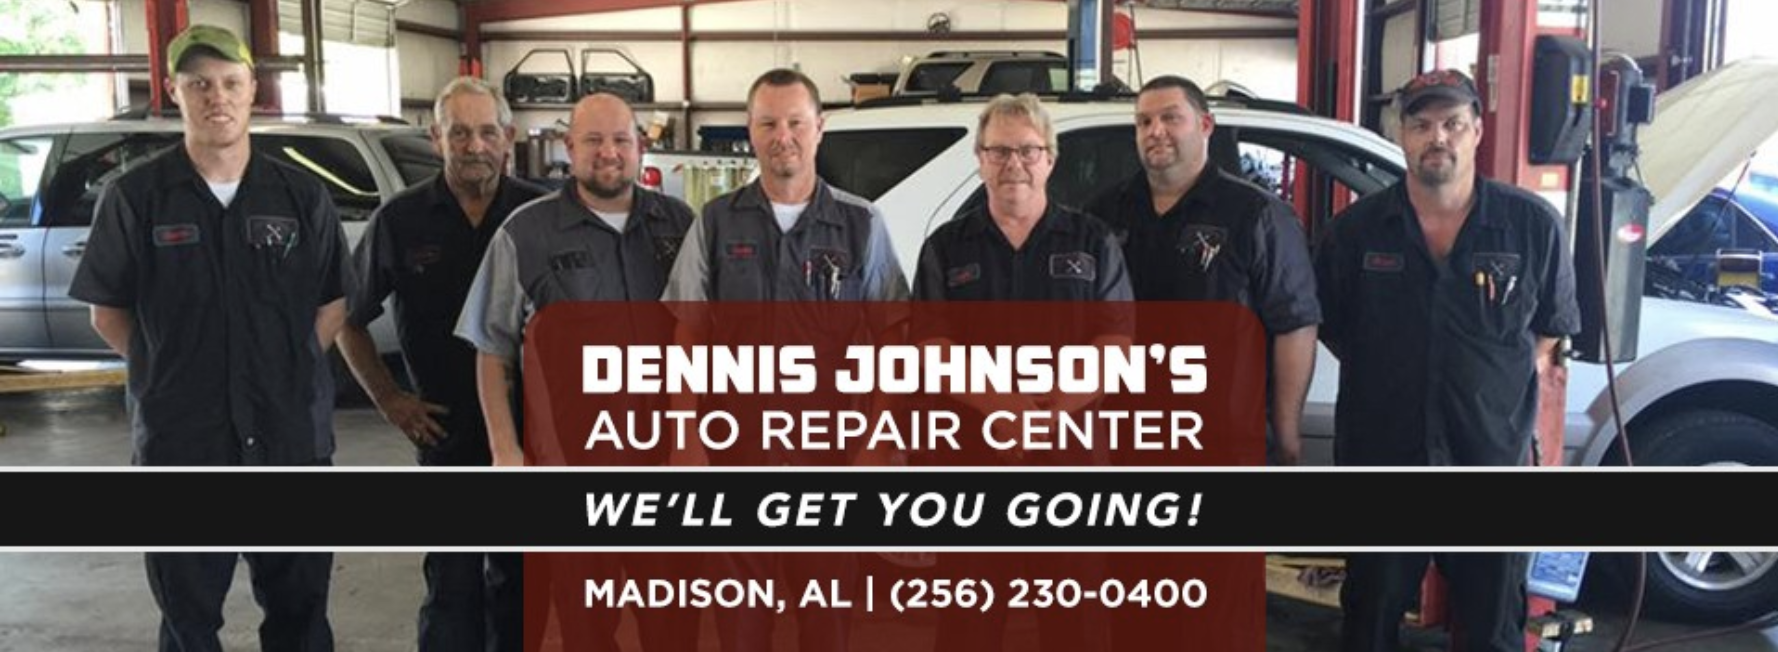 Dennis Johnson's Auto Repair